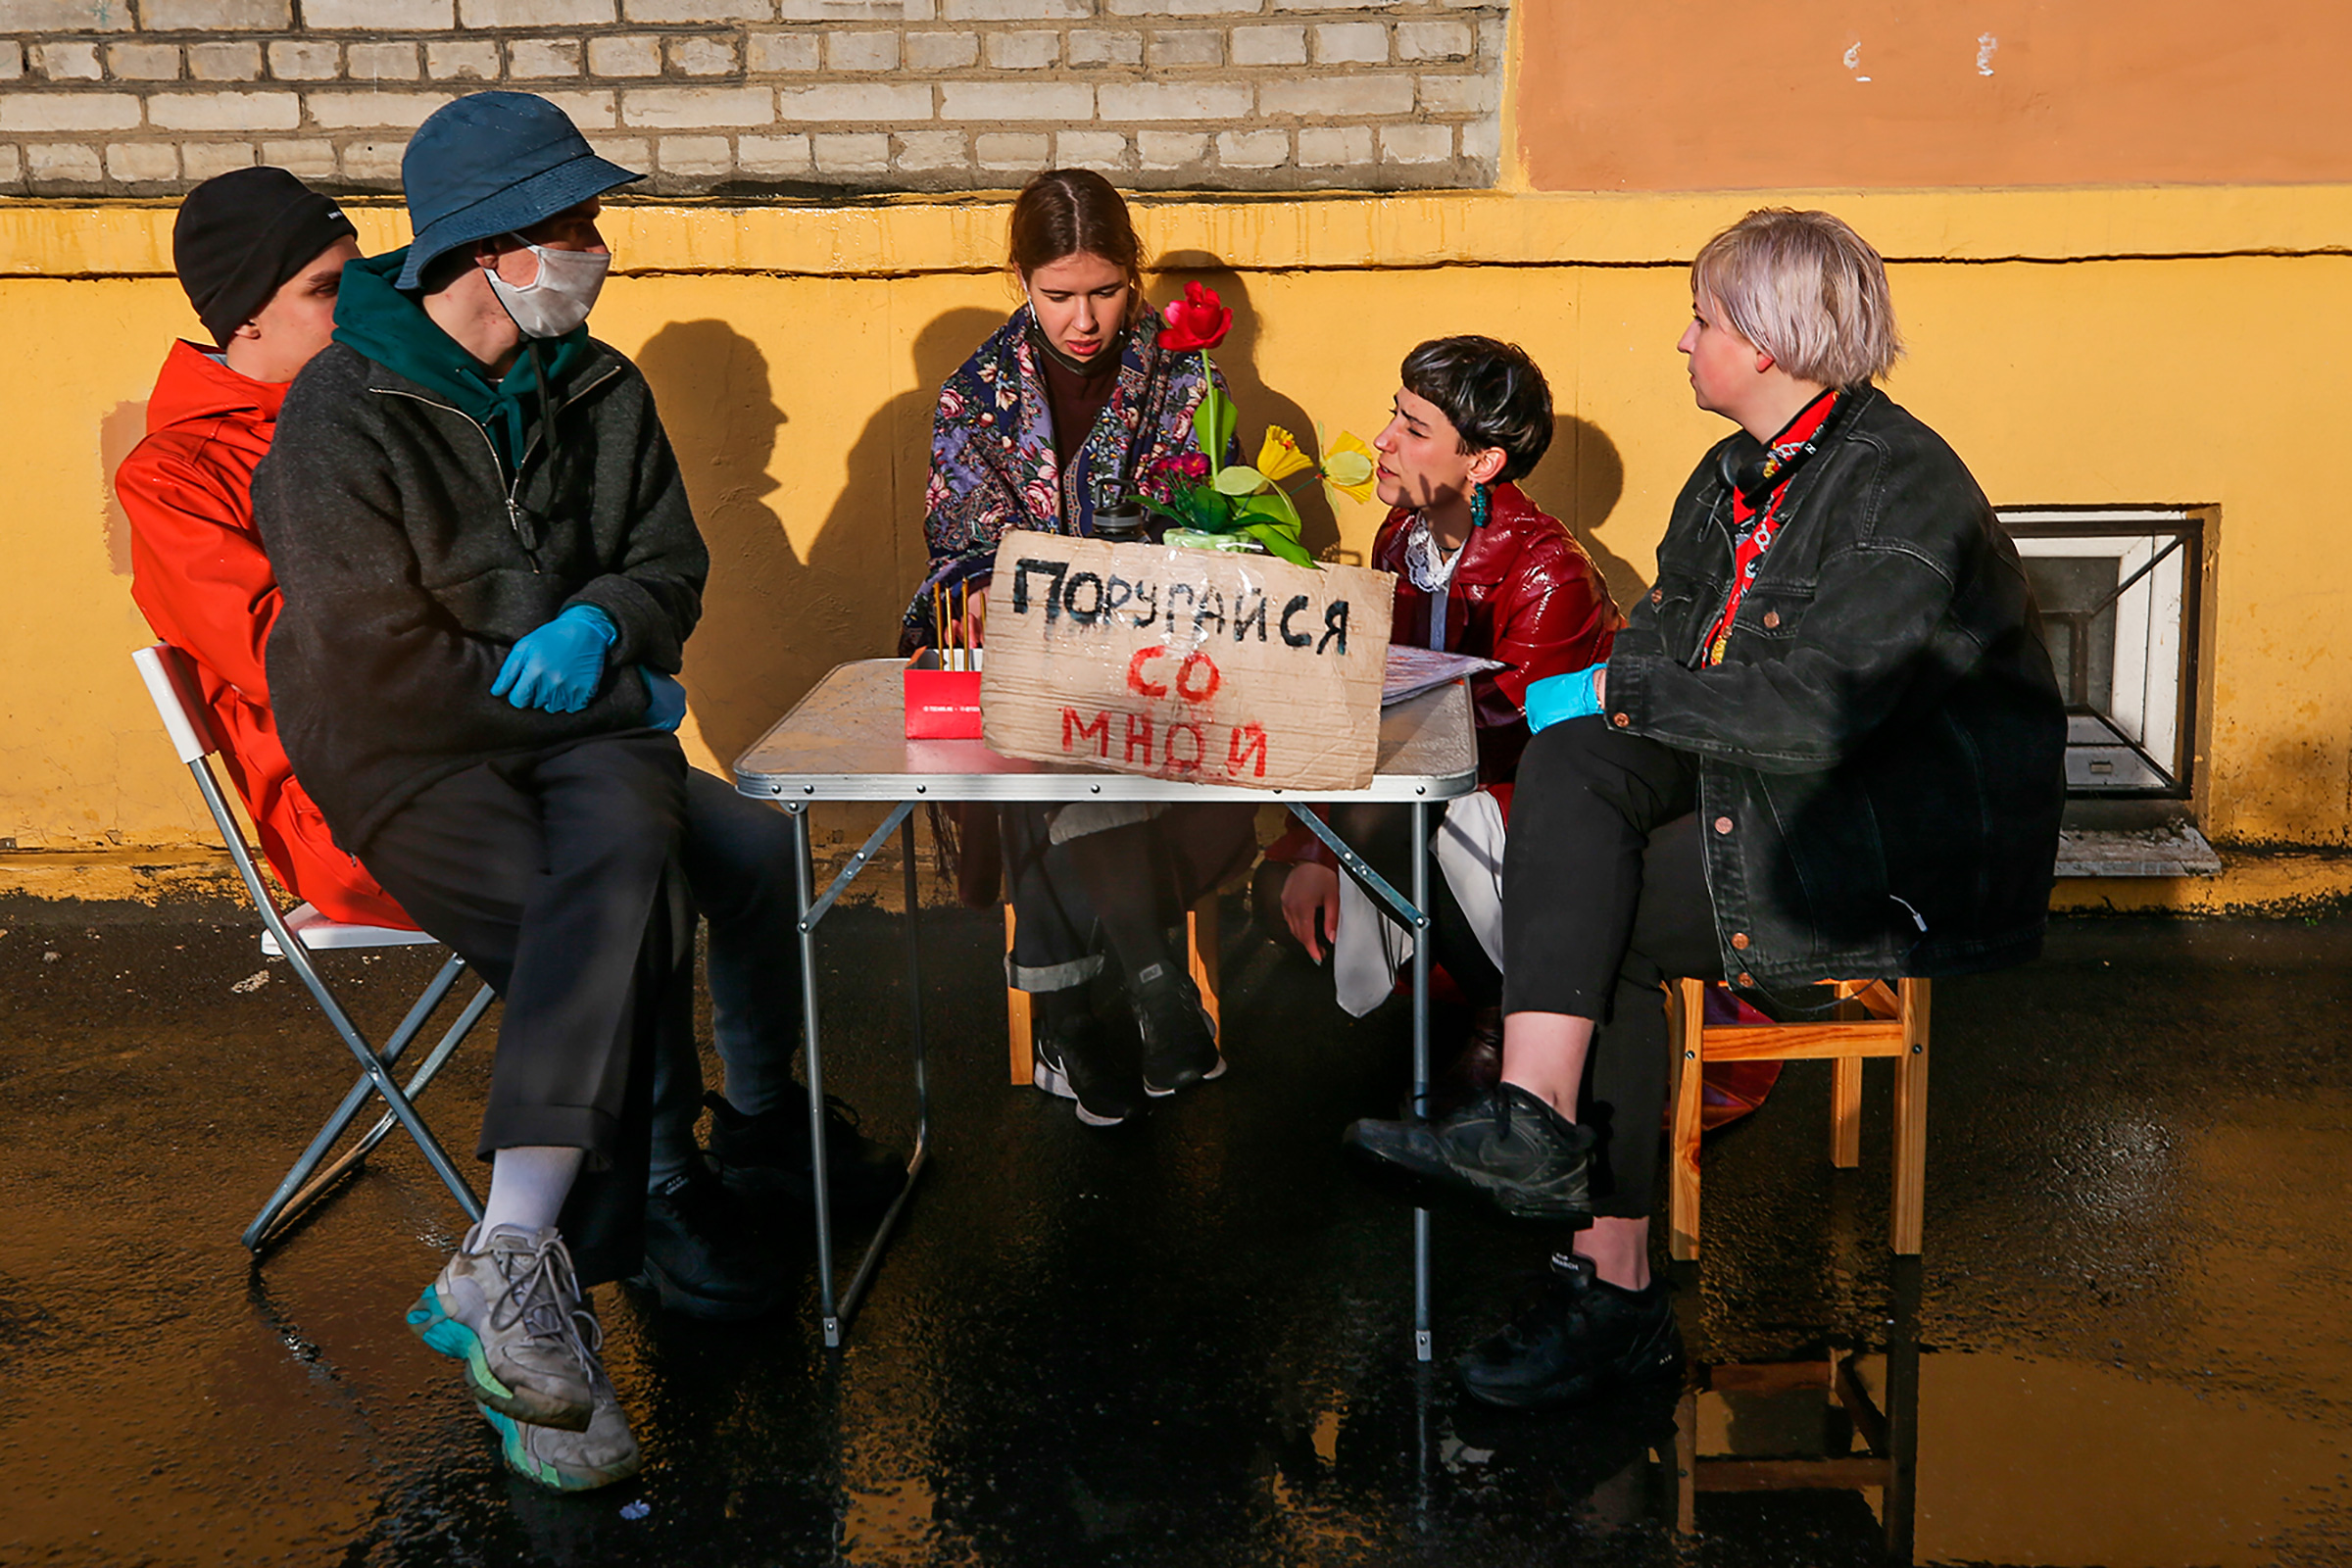 The art performance Quarrel With Me, shown in St. Petersburg in May, was organized by artist and activist Katrin Nenasheva, second from right, to address the topic of domestic violence during Russia's lockdown. In the performance, Nenasheva invites people to have a quarrel with her.